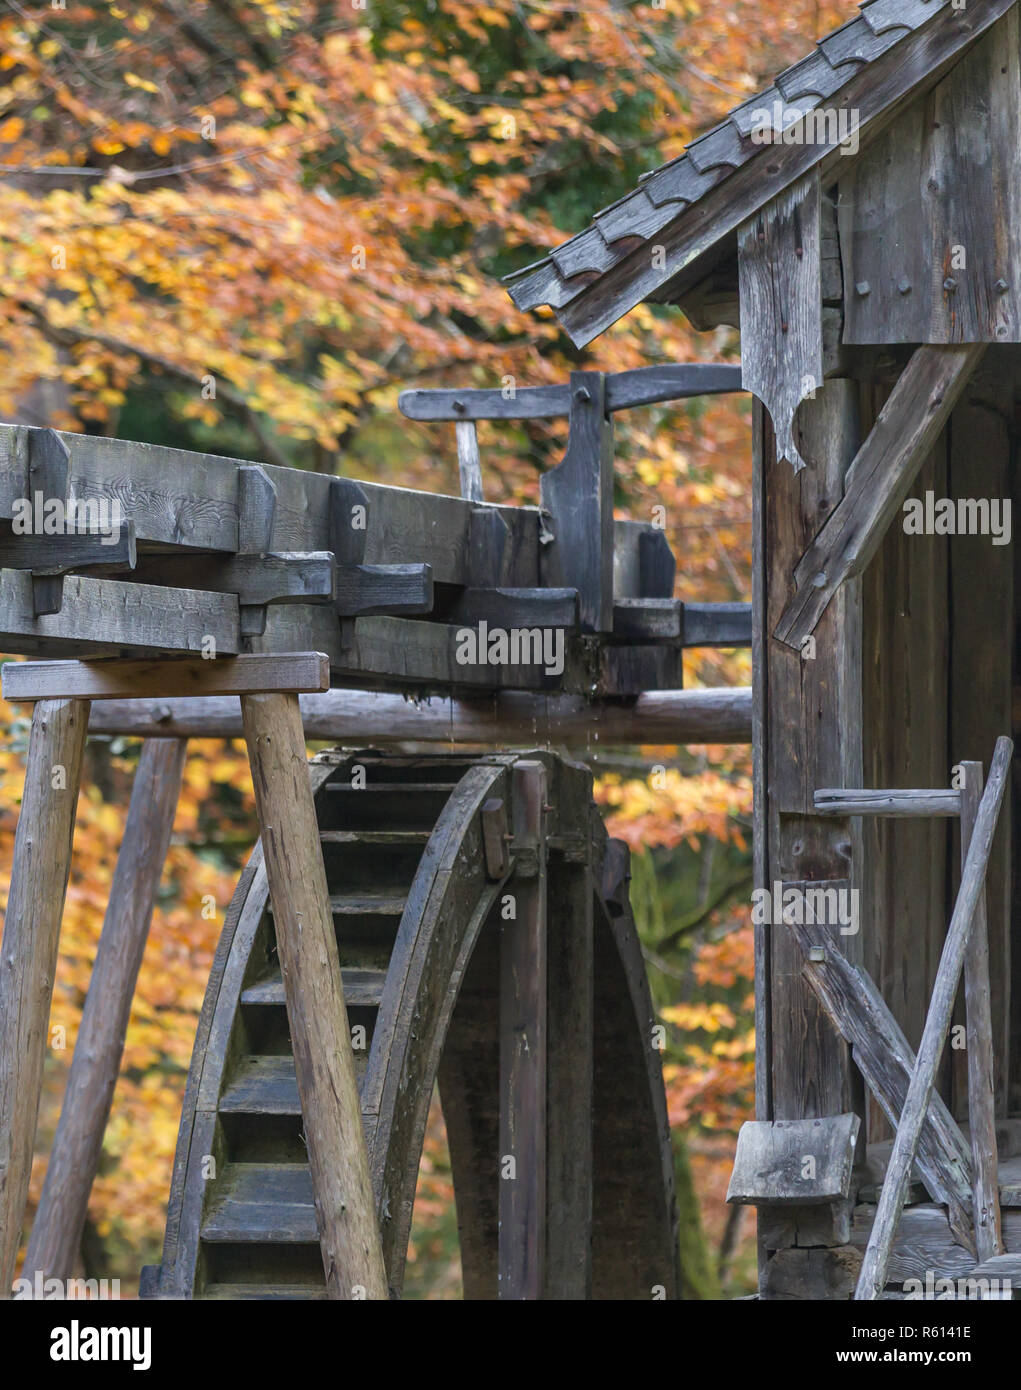 historic watermill outdoors in autumn - Stock Image